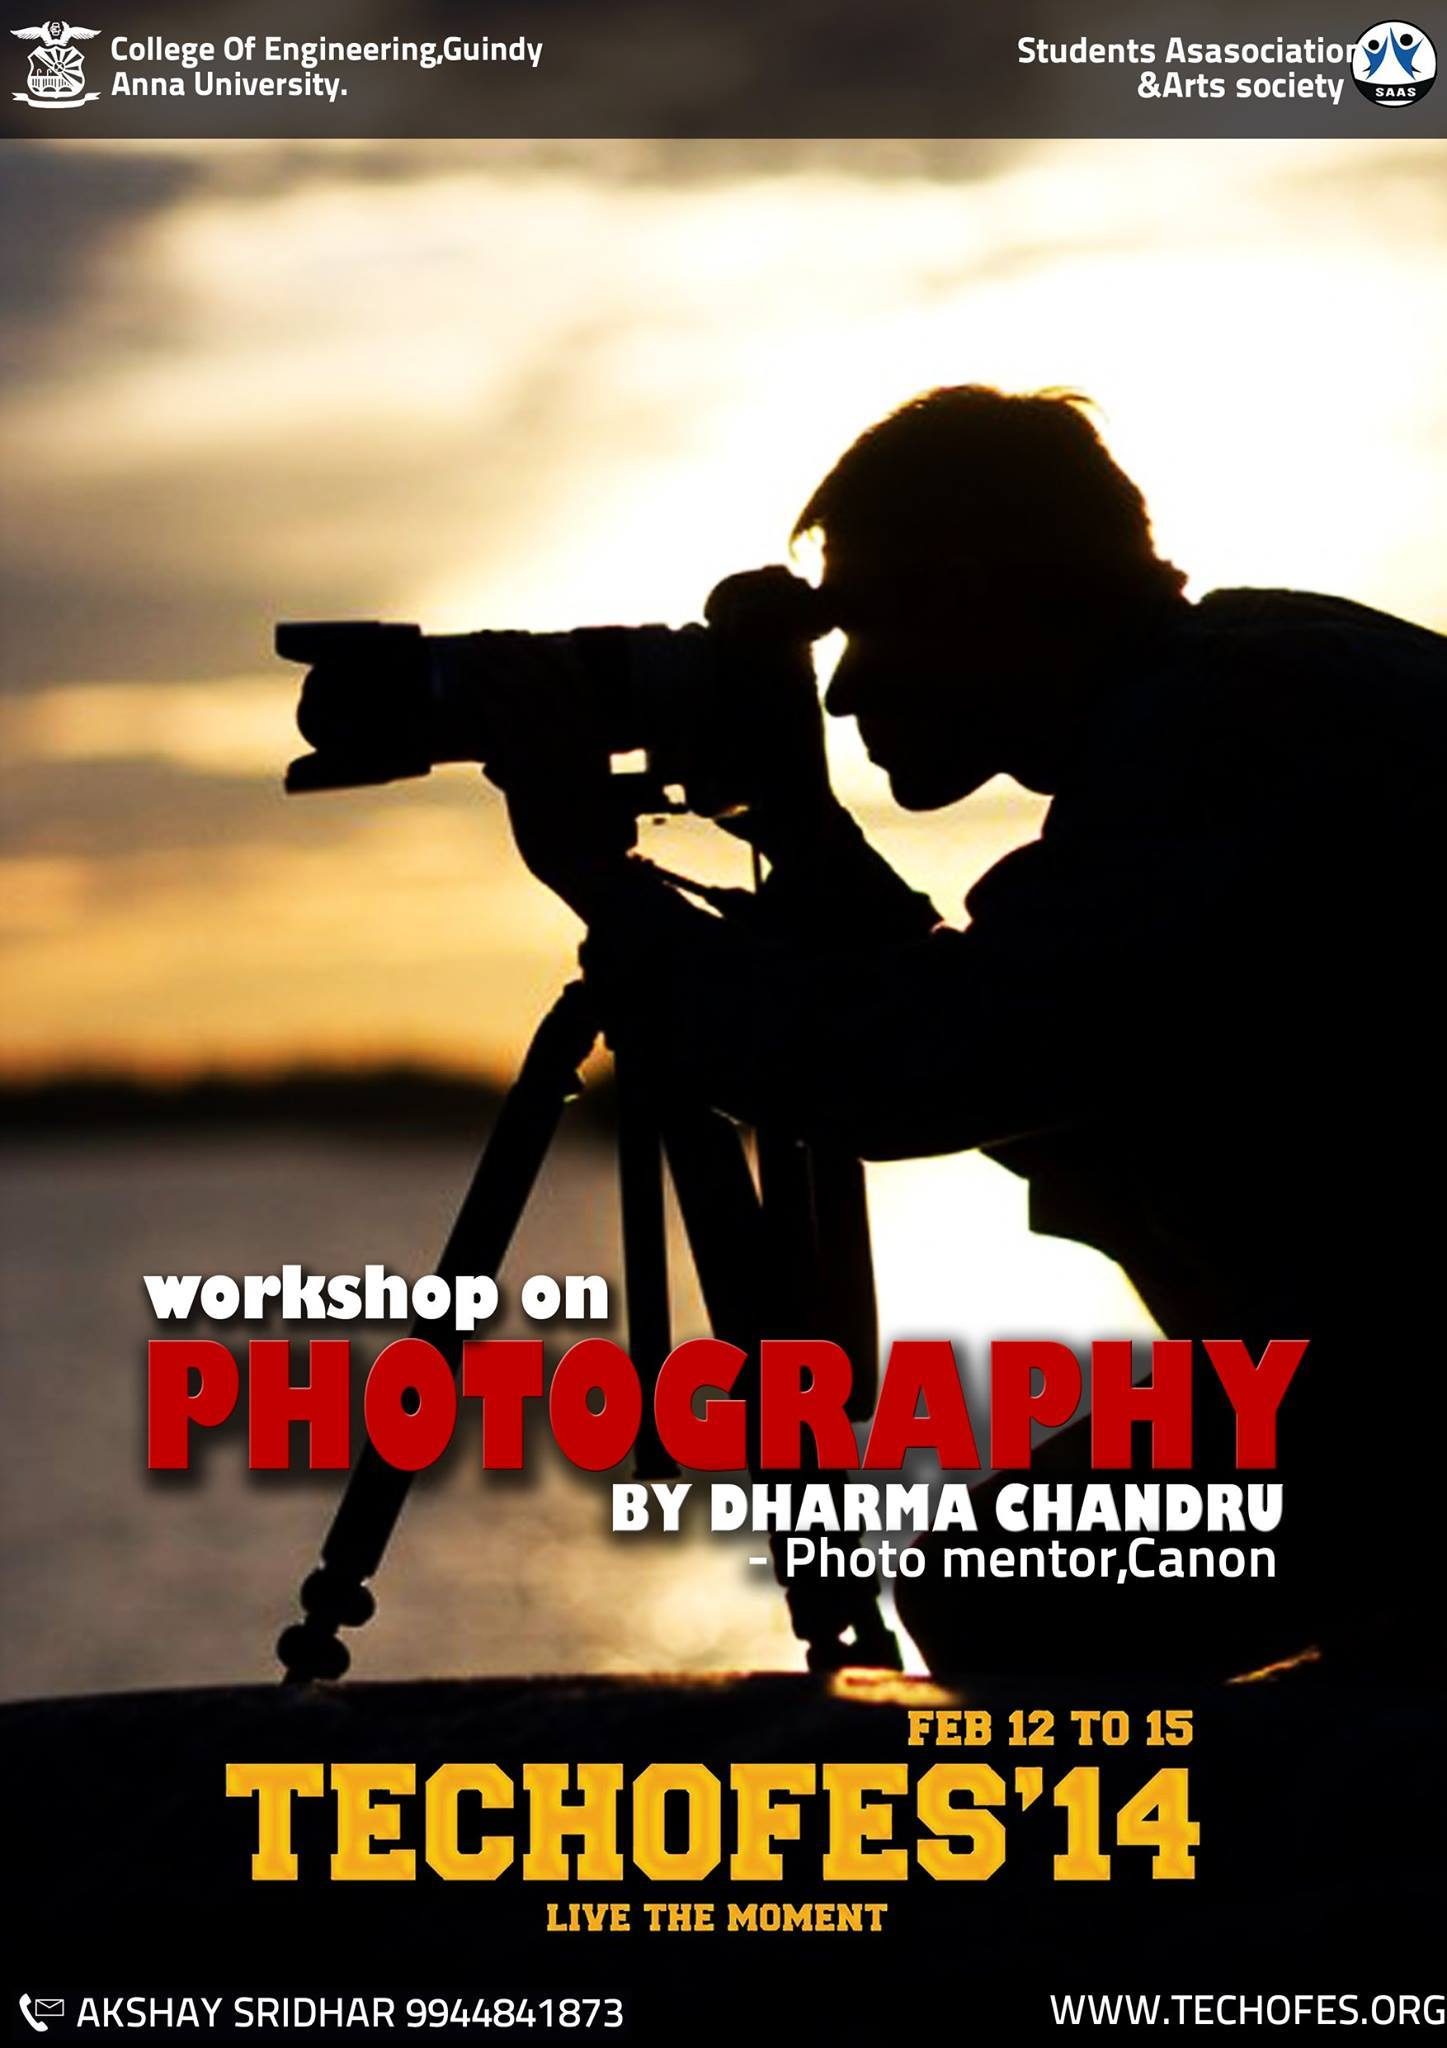 CEG-Photography-Workshop